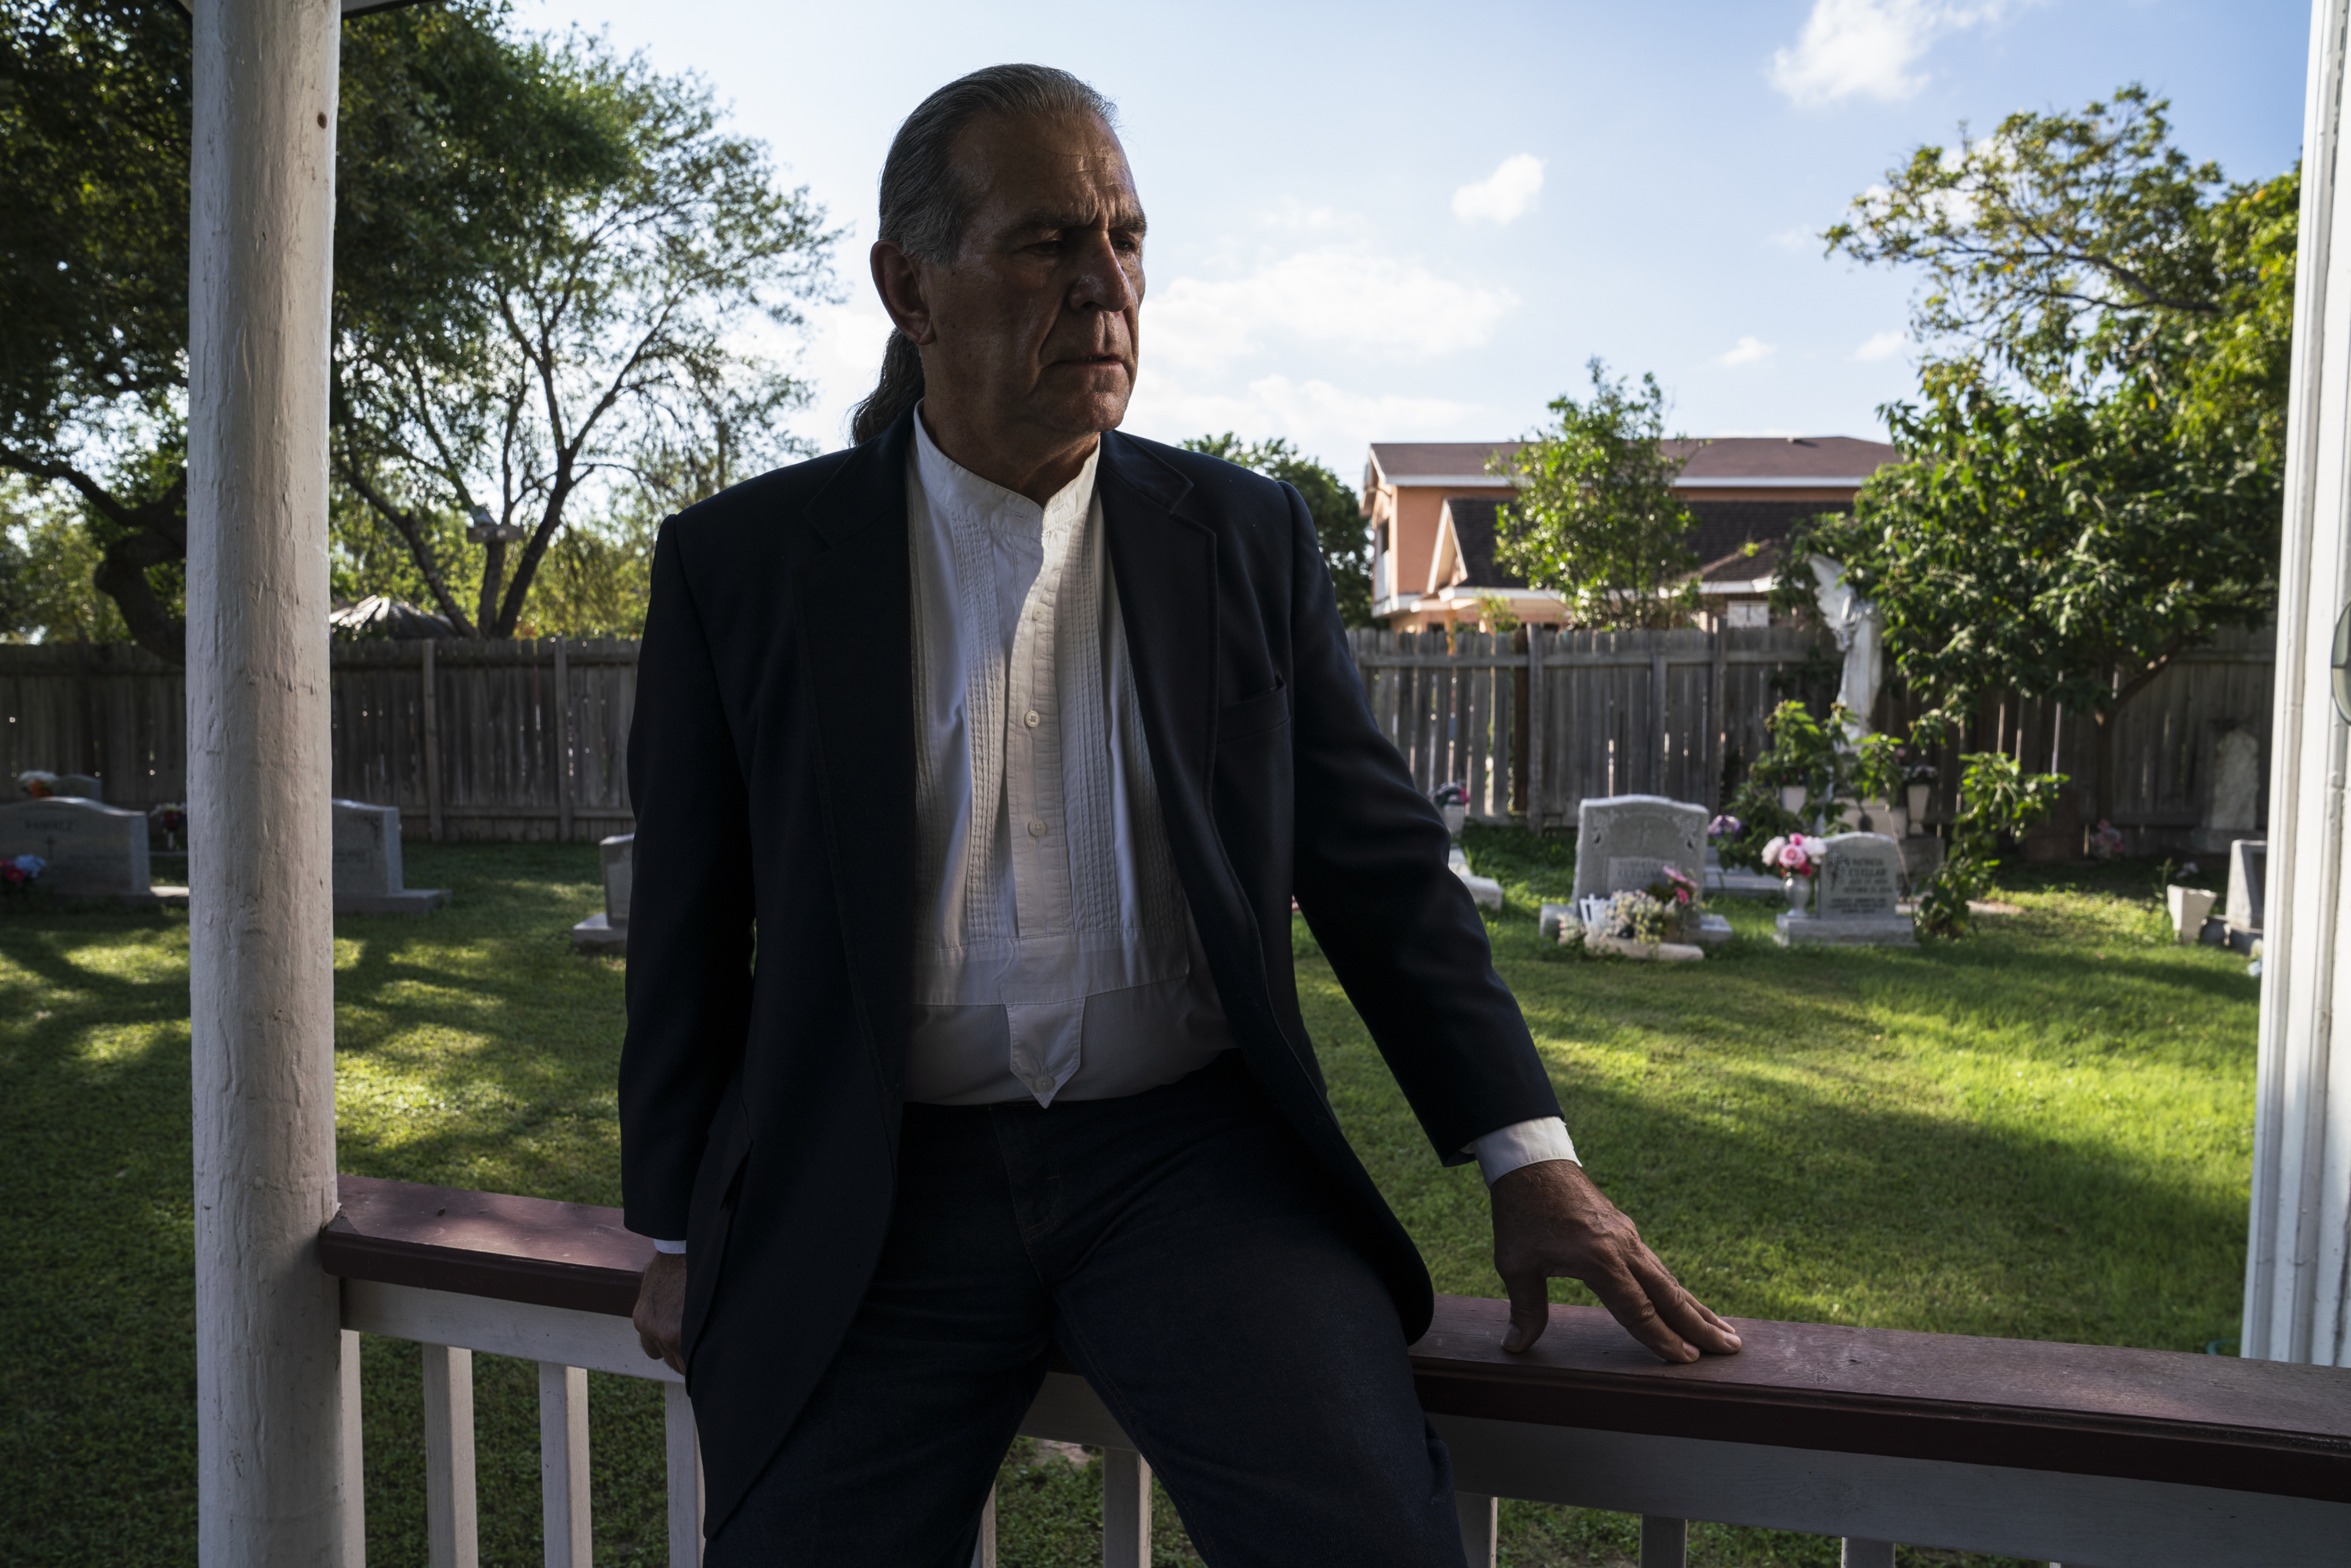 Ramiro Roberto Ramírez, 70, sits in front of the Martin Jackson Church and Cemetery in San Juan, Tex. on Nov. 6, 2018. The church was built by his great-great grandfather in the late 1800s. The new proposed wall would leave this property on the south side of it.Photo: Verónica G. Cárdenas for The Intercept